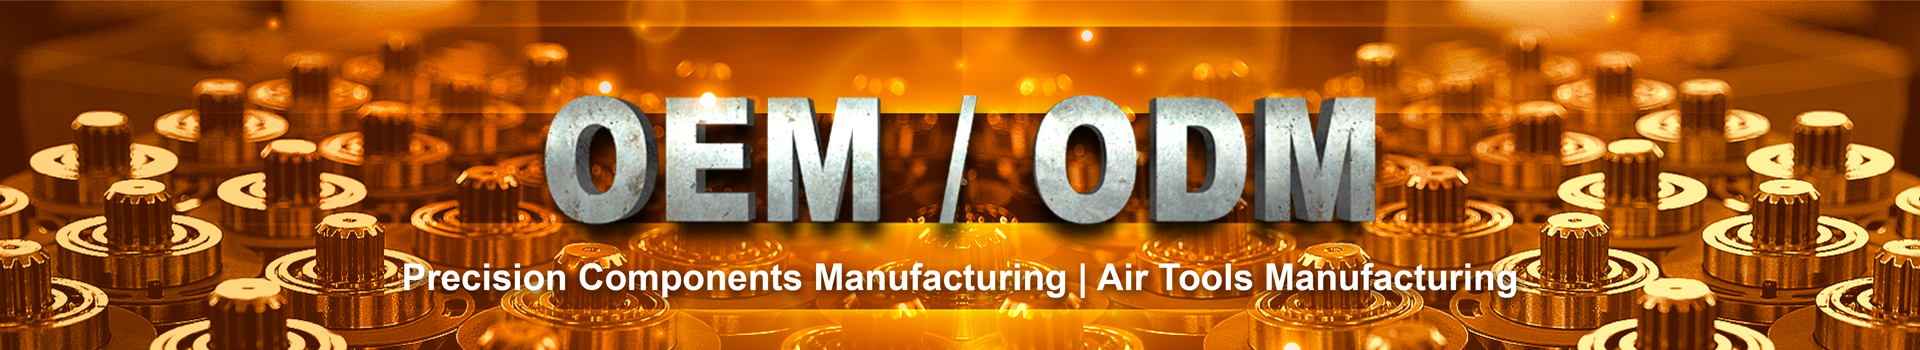 OEM / ODM - Precision Parts Machining Division(Situational photo)